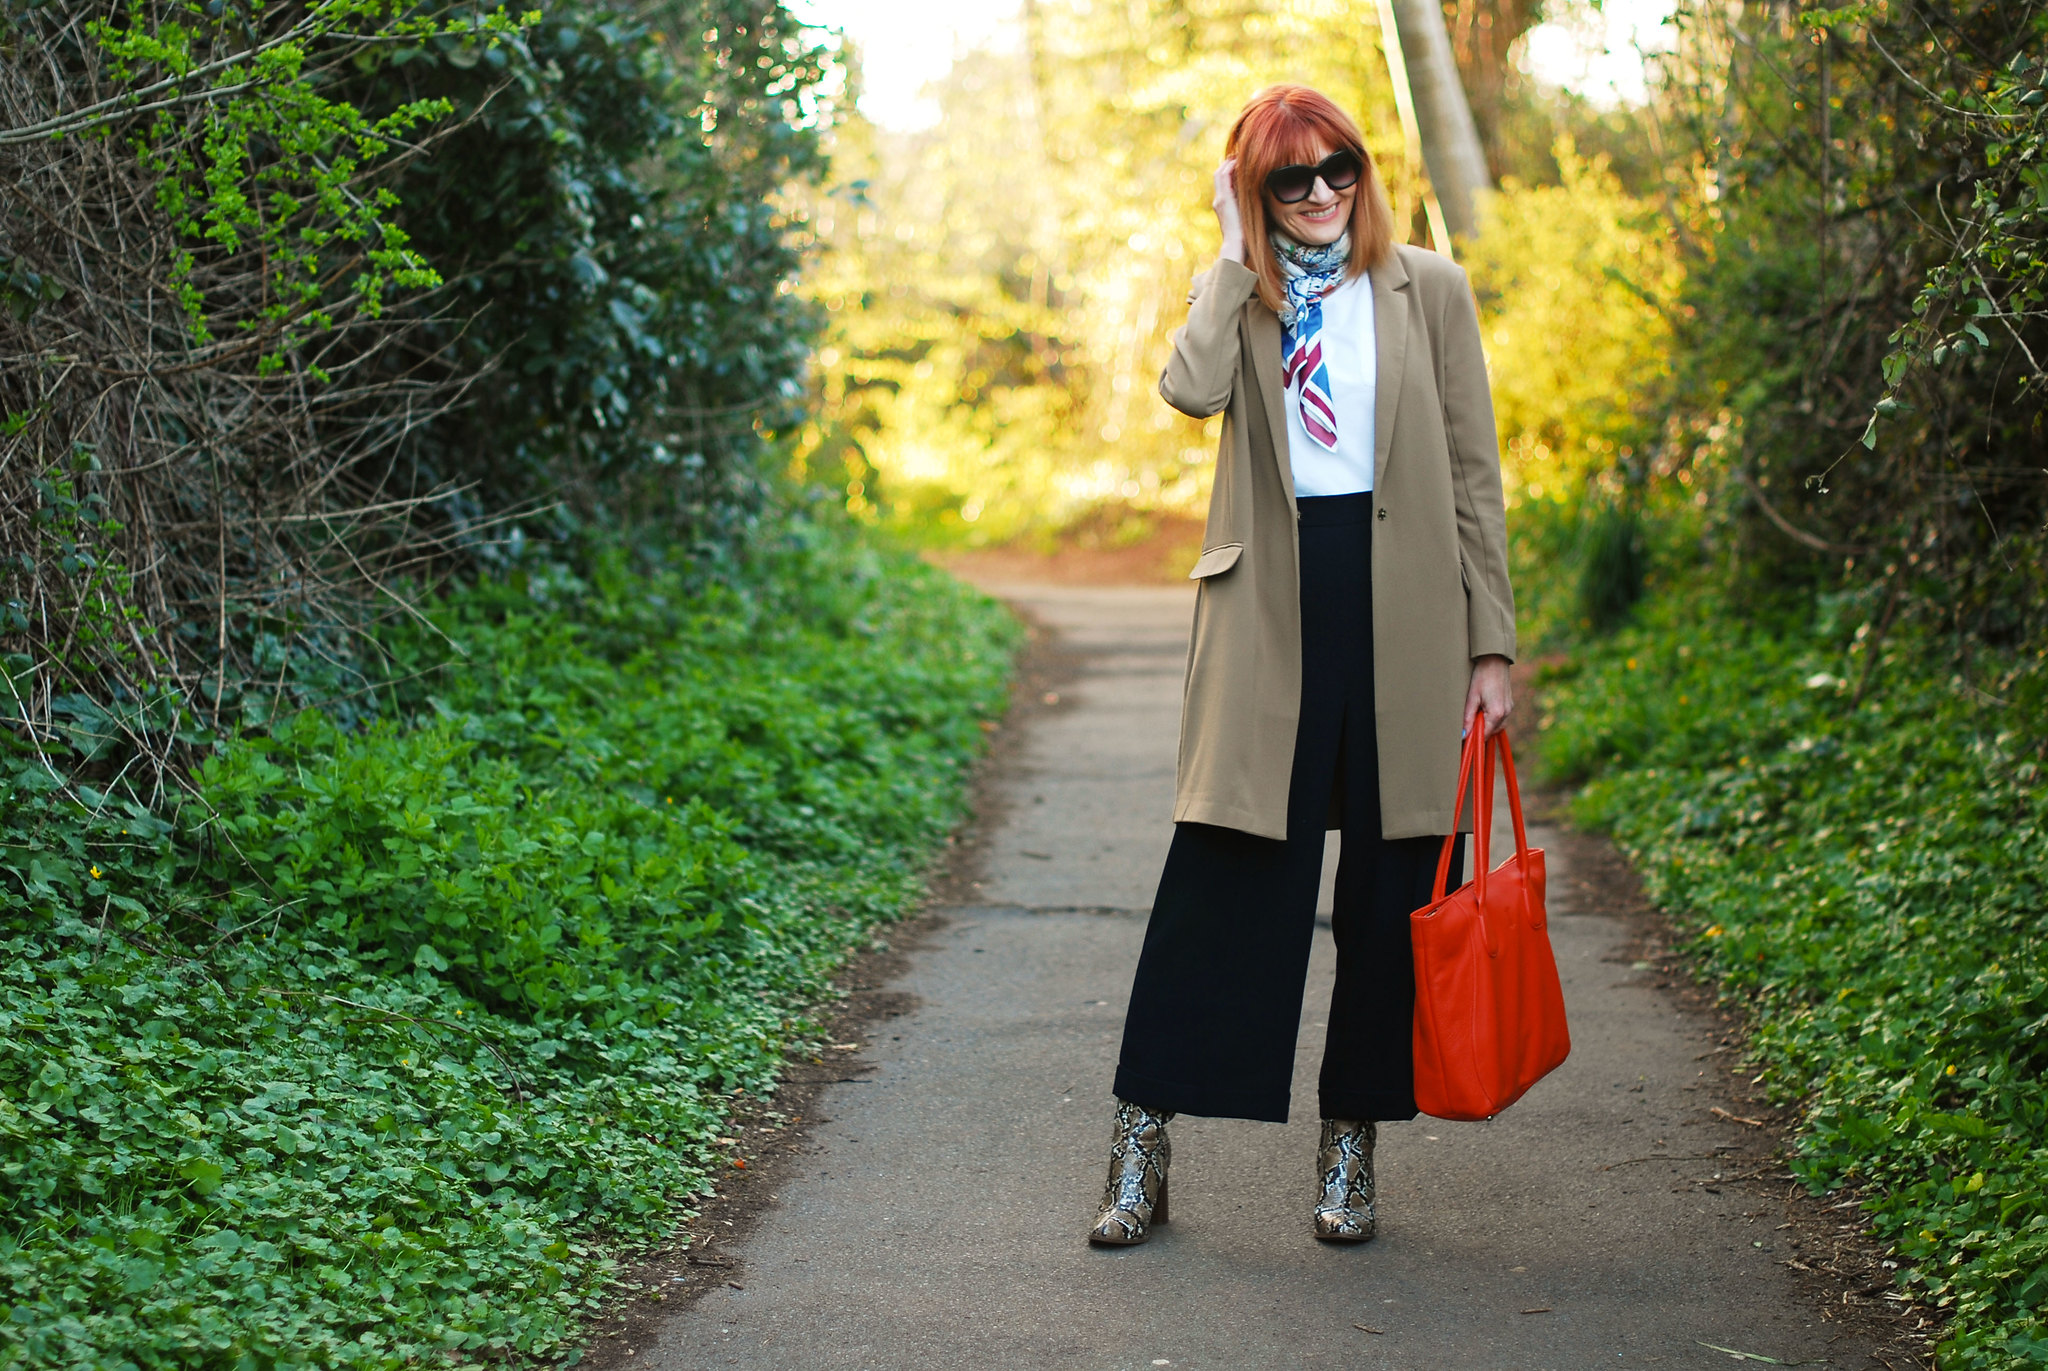 SS16 Smart style: Longline blazer with M&S Archive by Alexa culottes, neck scarf, snakeskin boots, orange tote | Not Dressed As Lamb